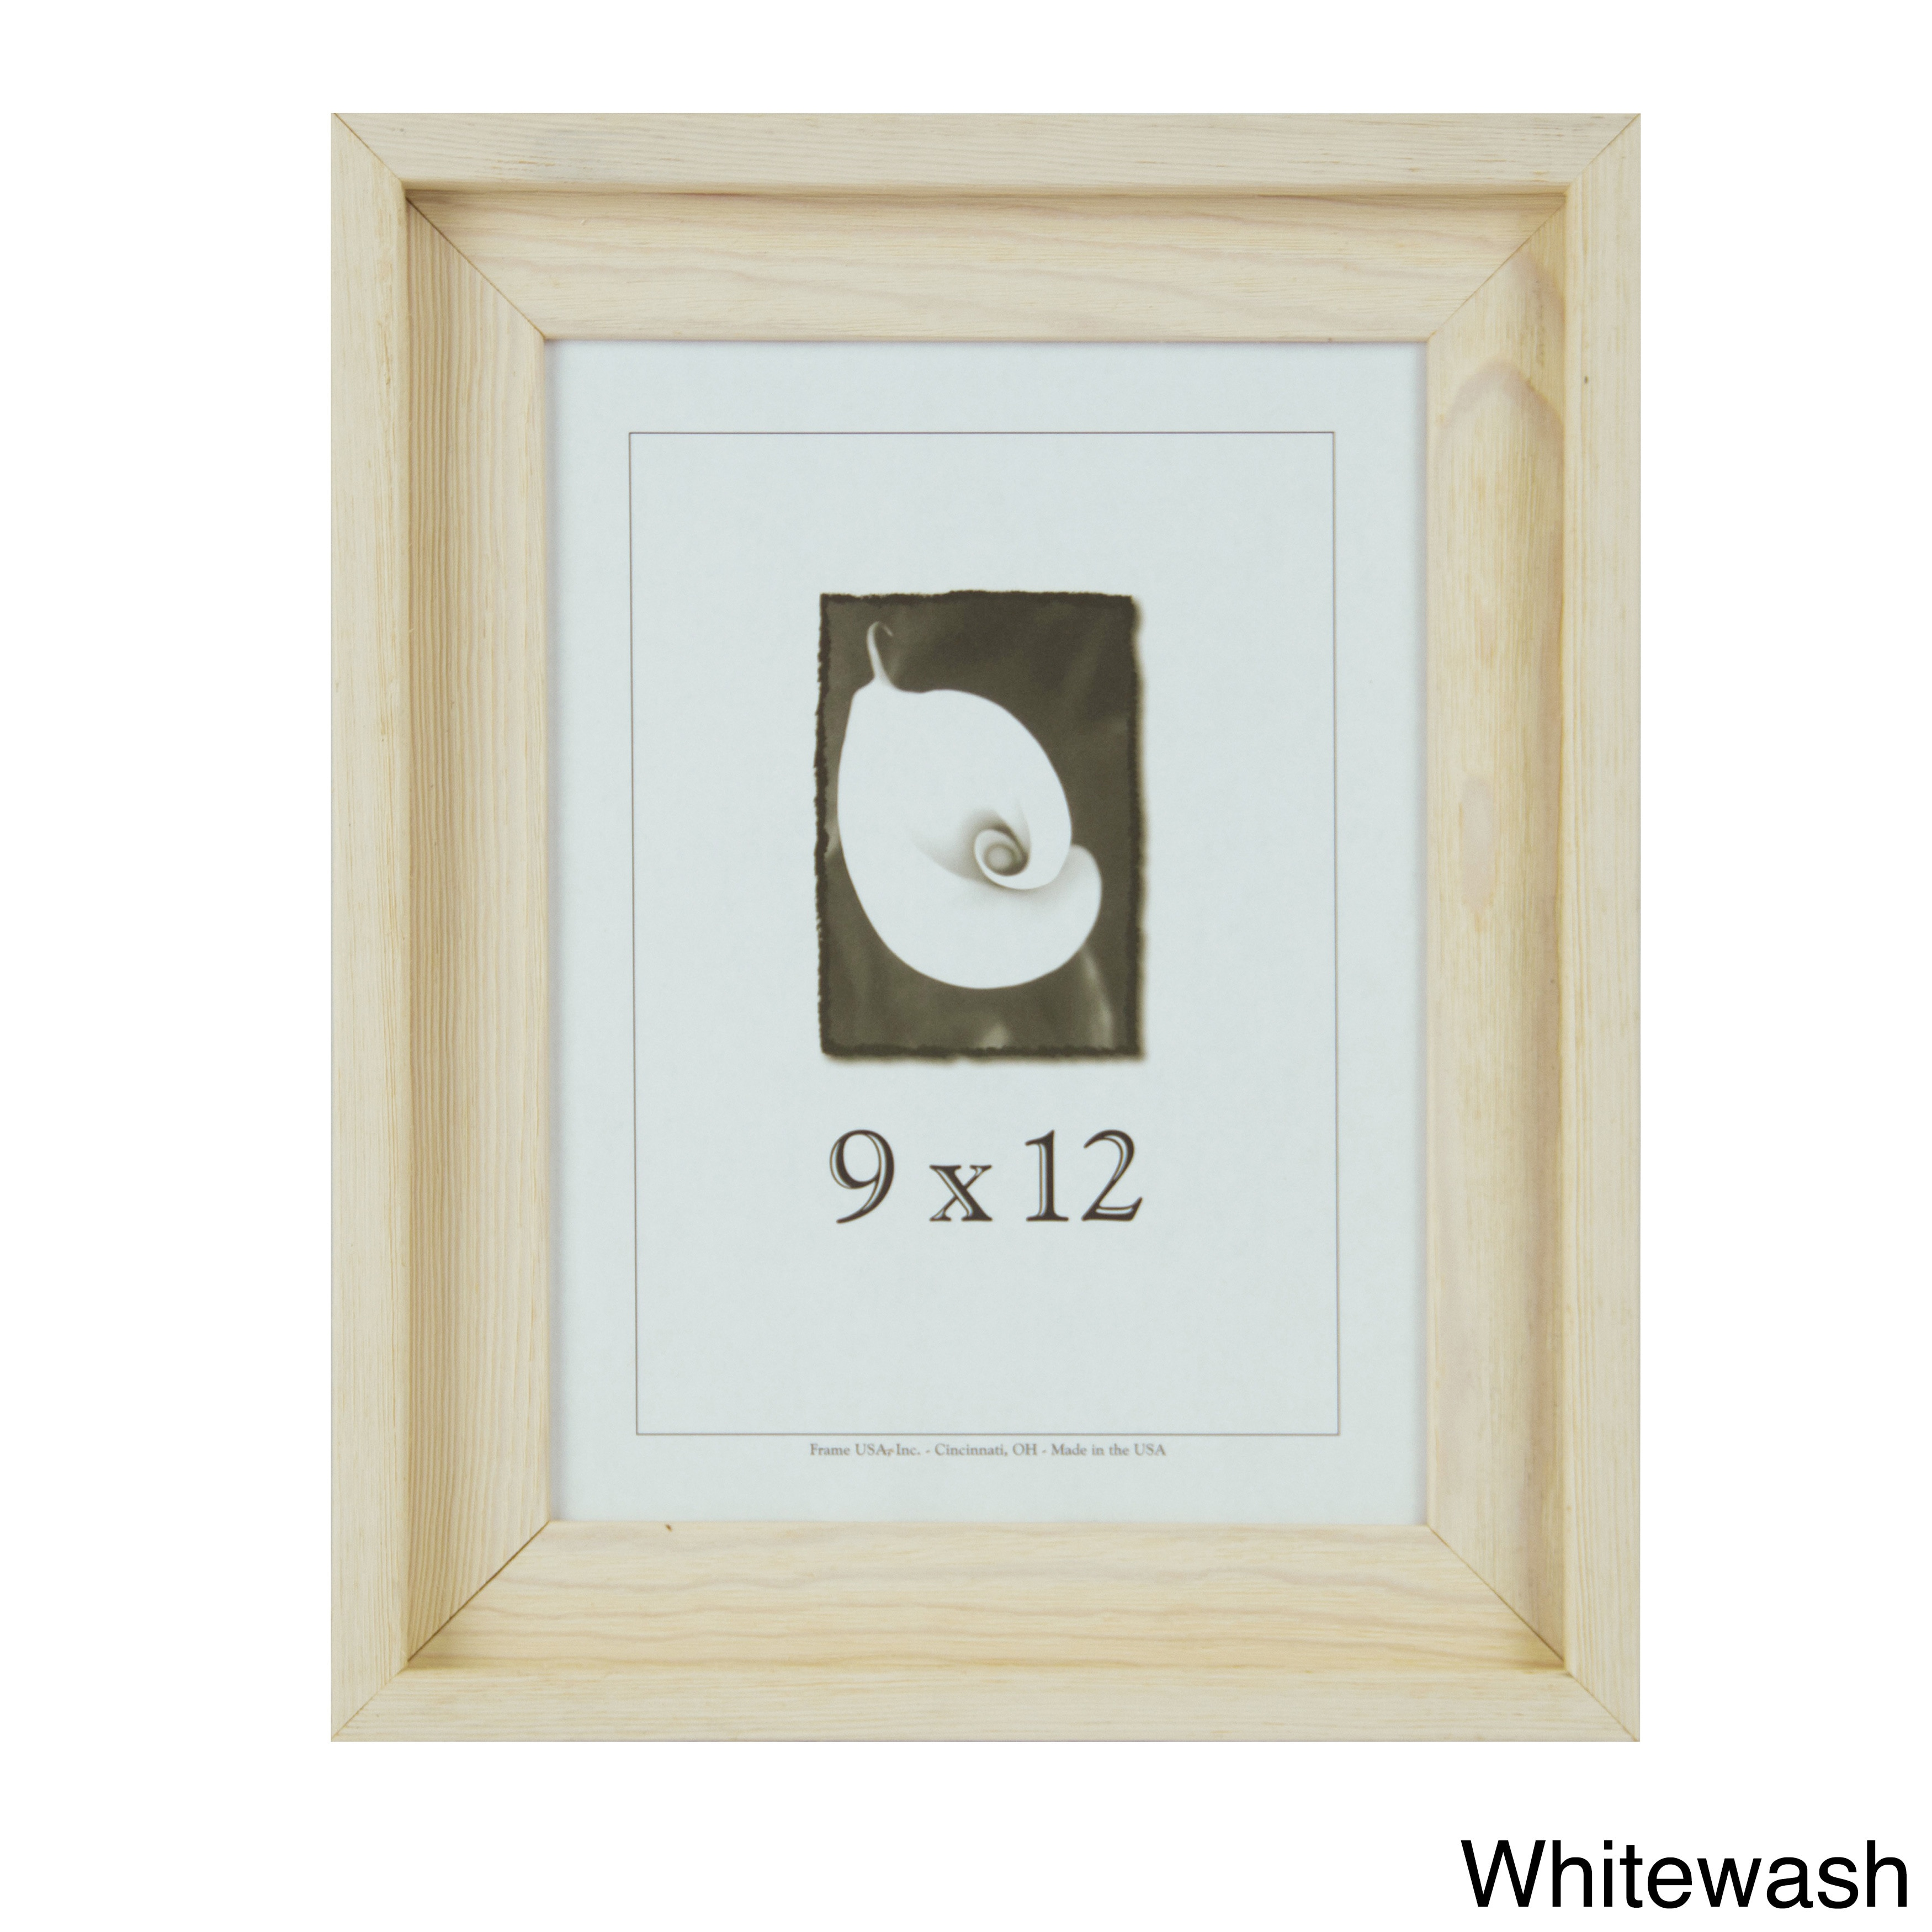 12x12 Frame Matted To 8x8 12x12 Picture Frame With Mat For 8xx10